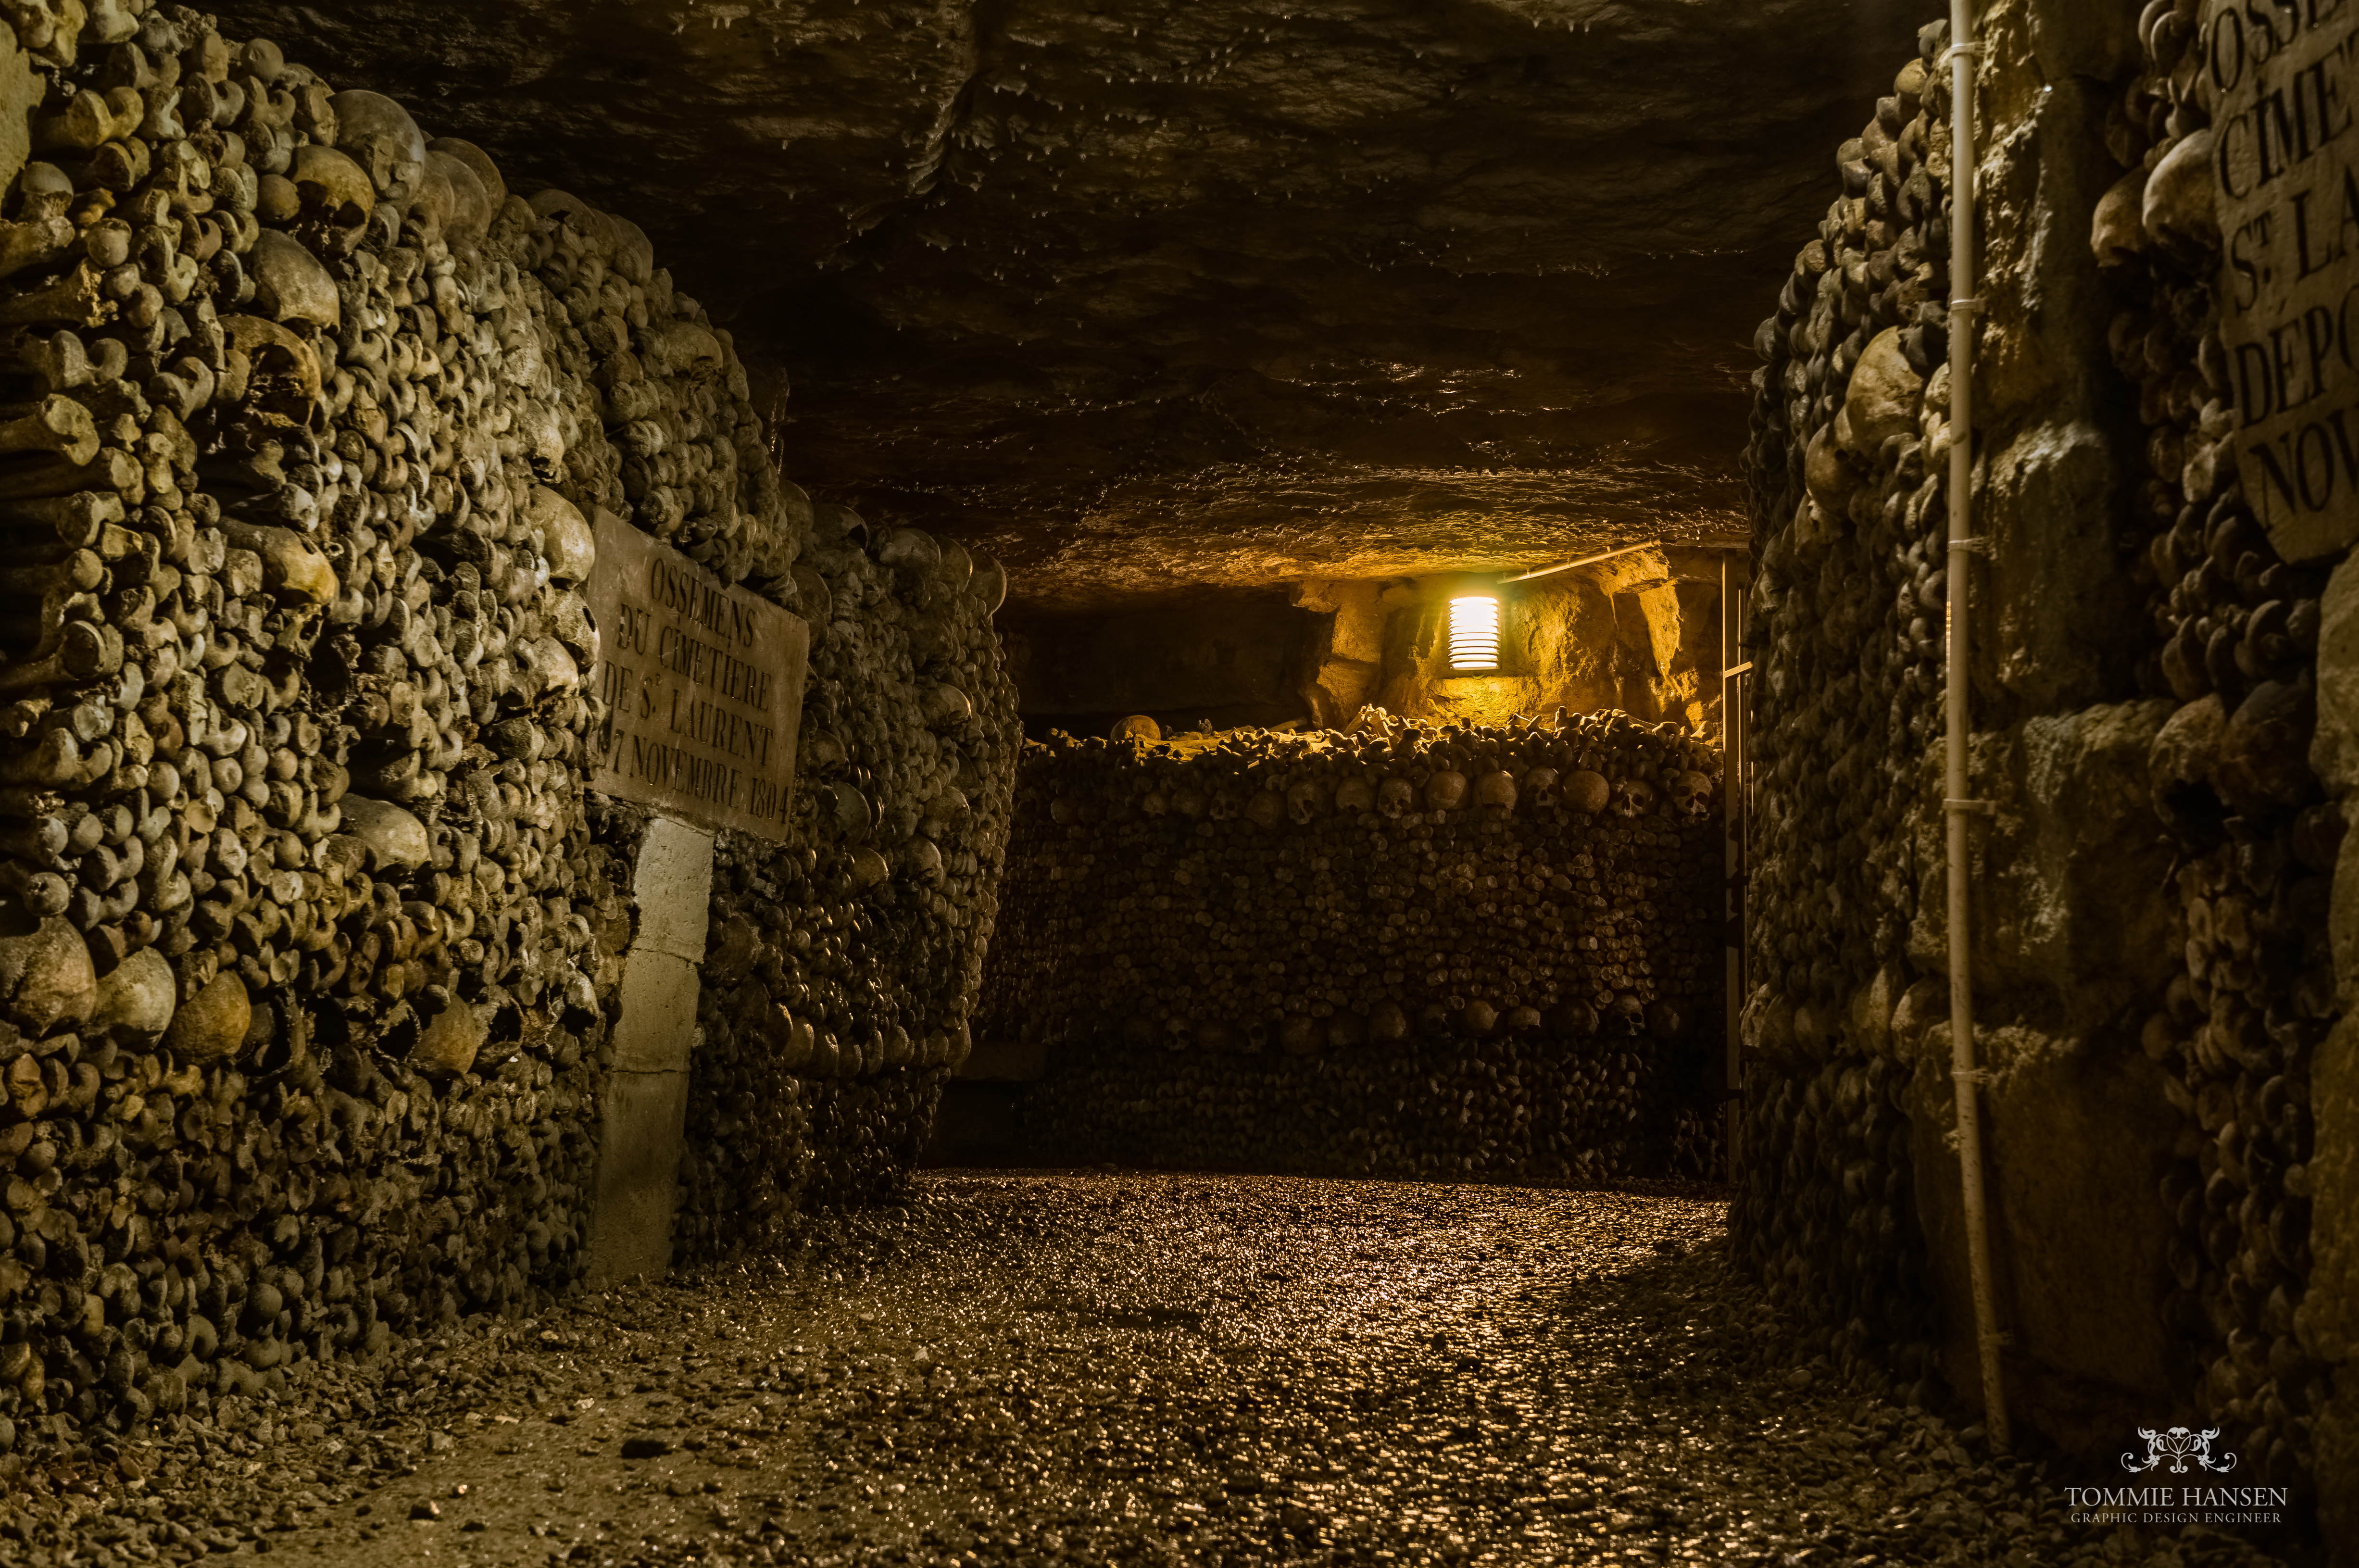 File:The Catacombs of Paris 2, France August 2013.jpg